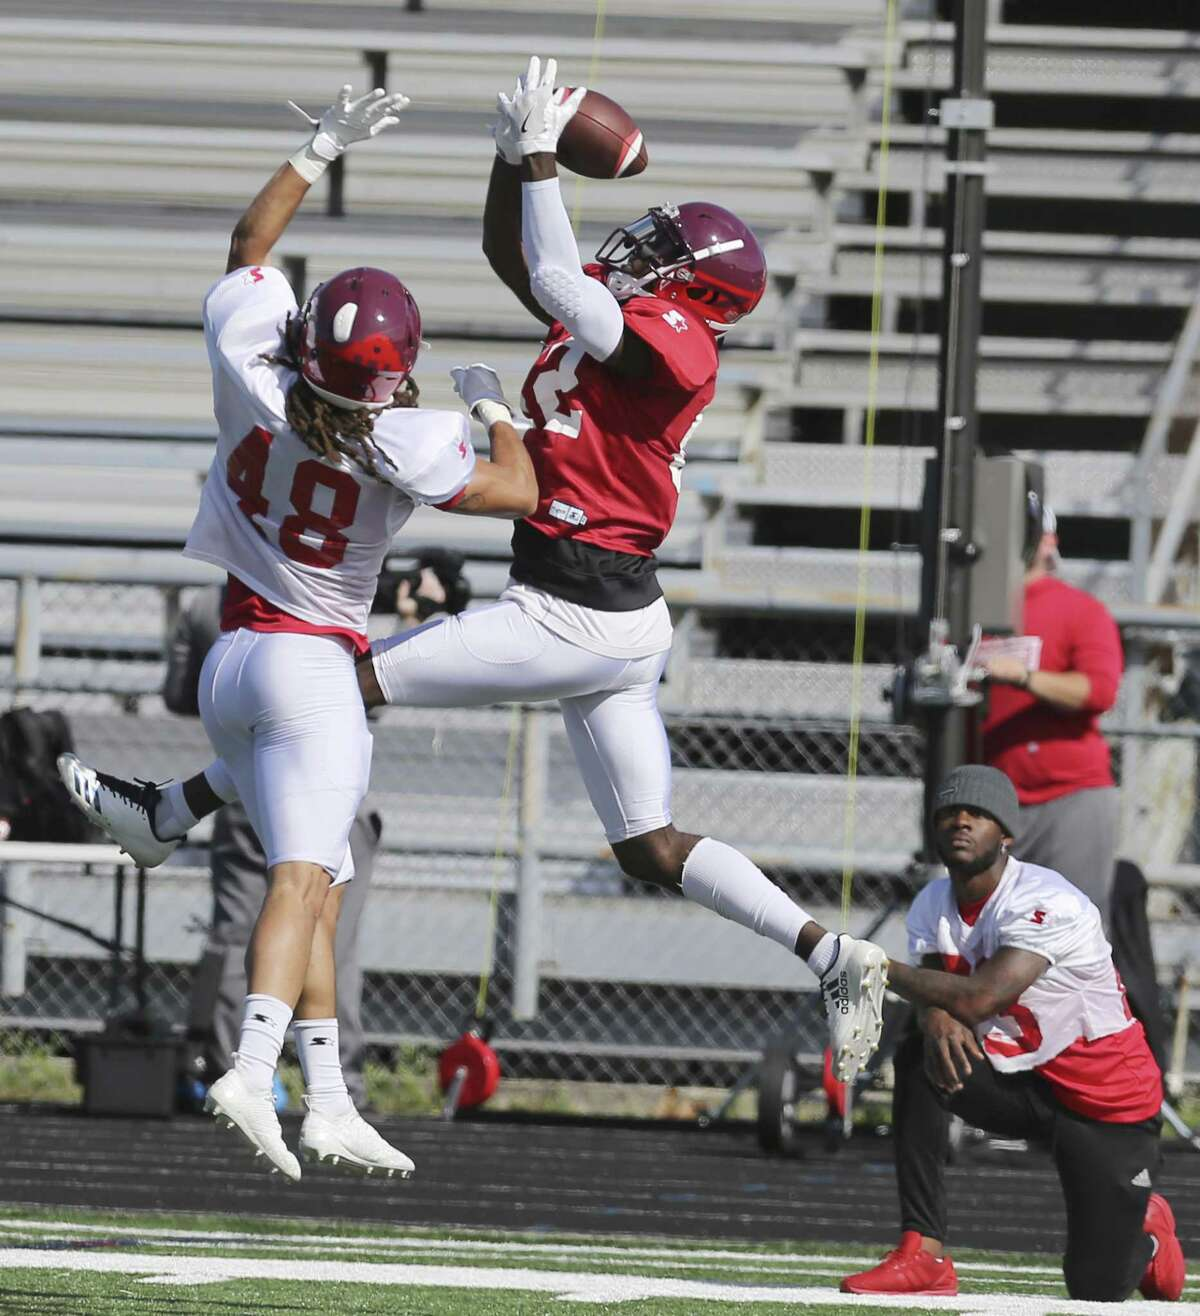 Receiver Mekale McKay makes a leaping grab over cornerback Oscar White in a recent Commanders practice. The team will play 10 games in its inaugural season.